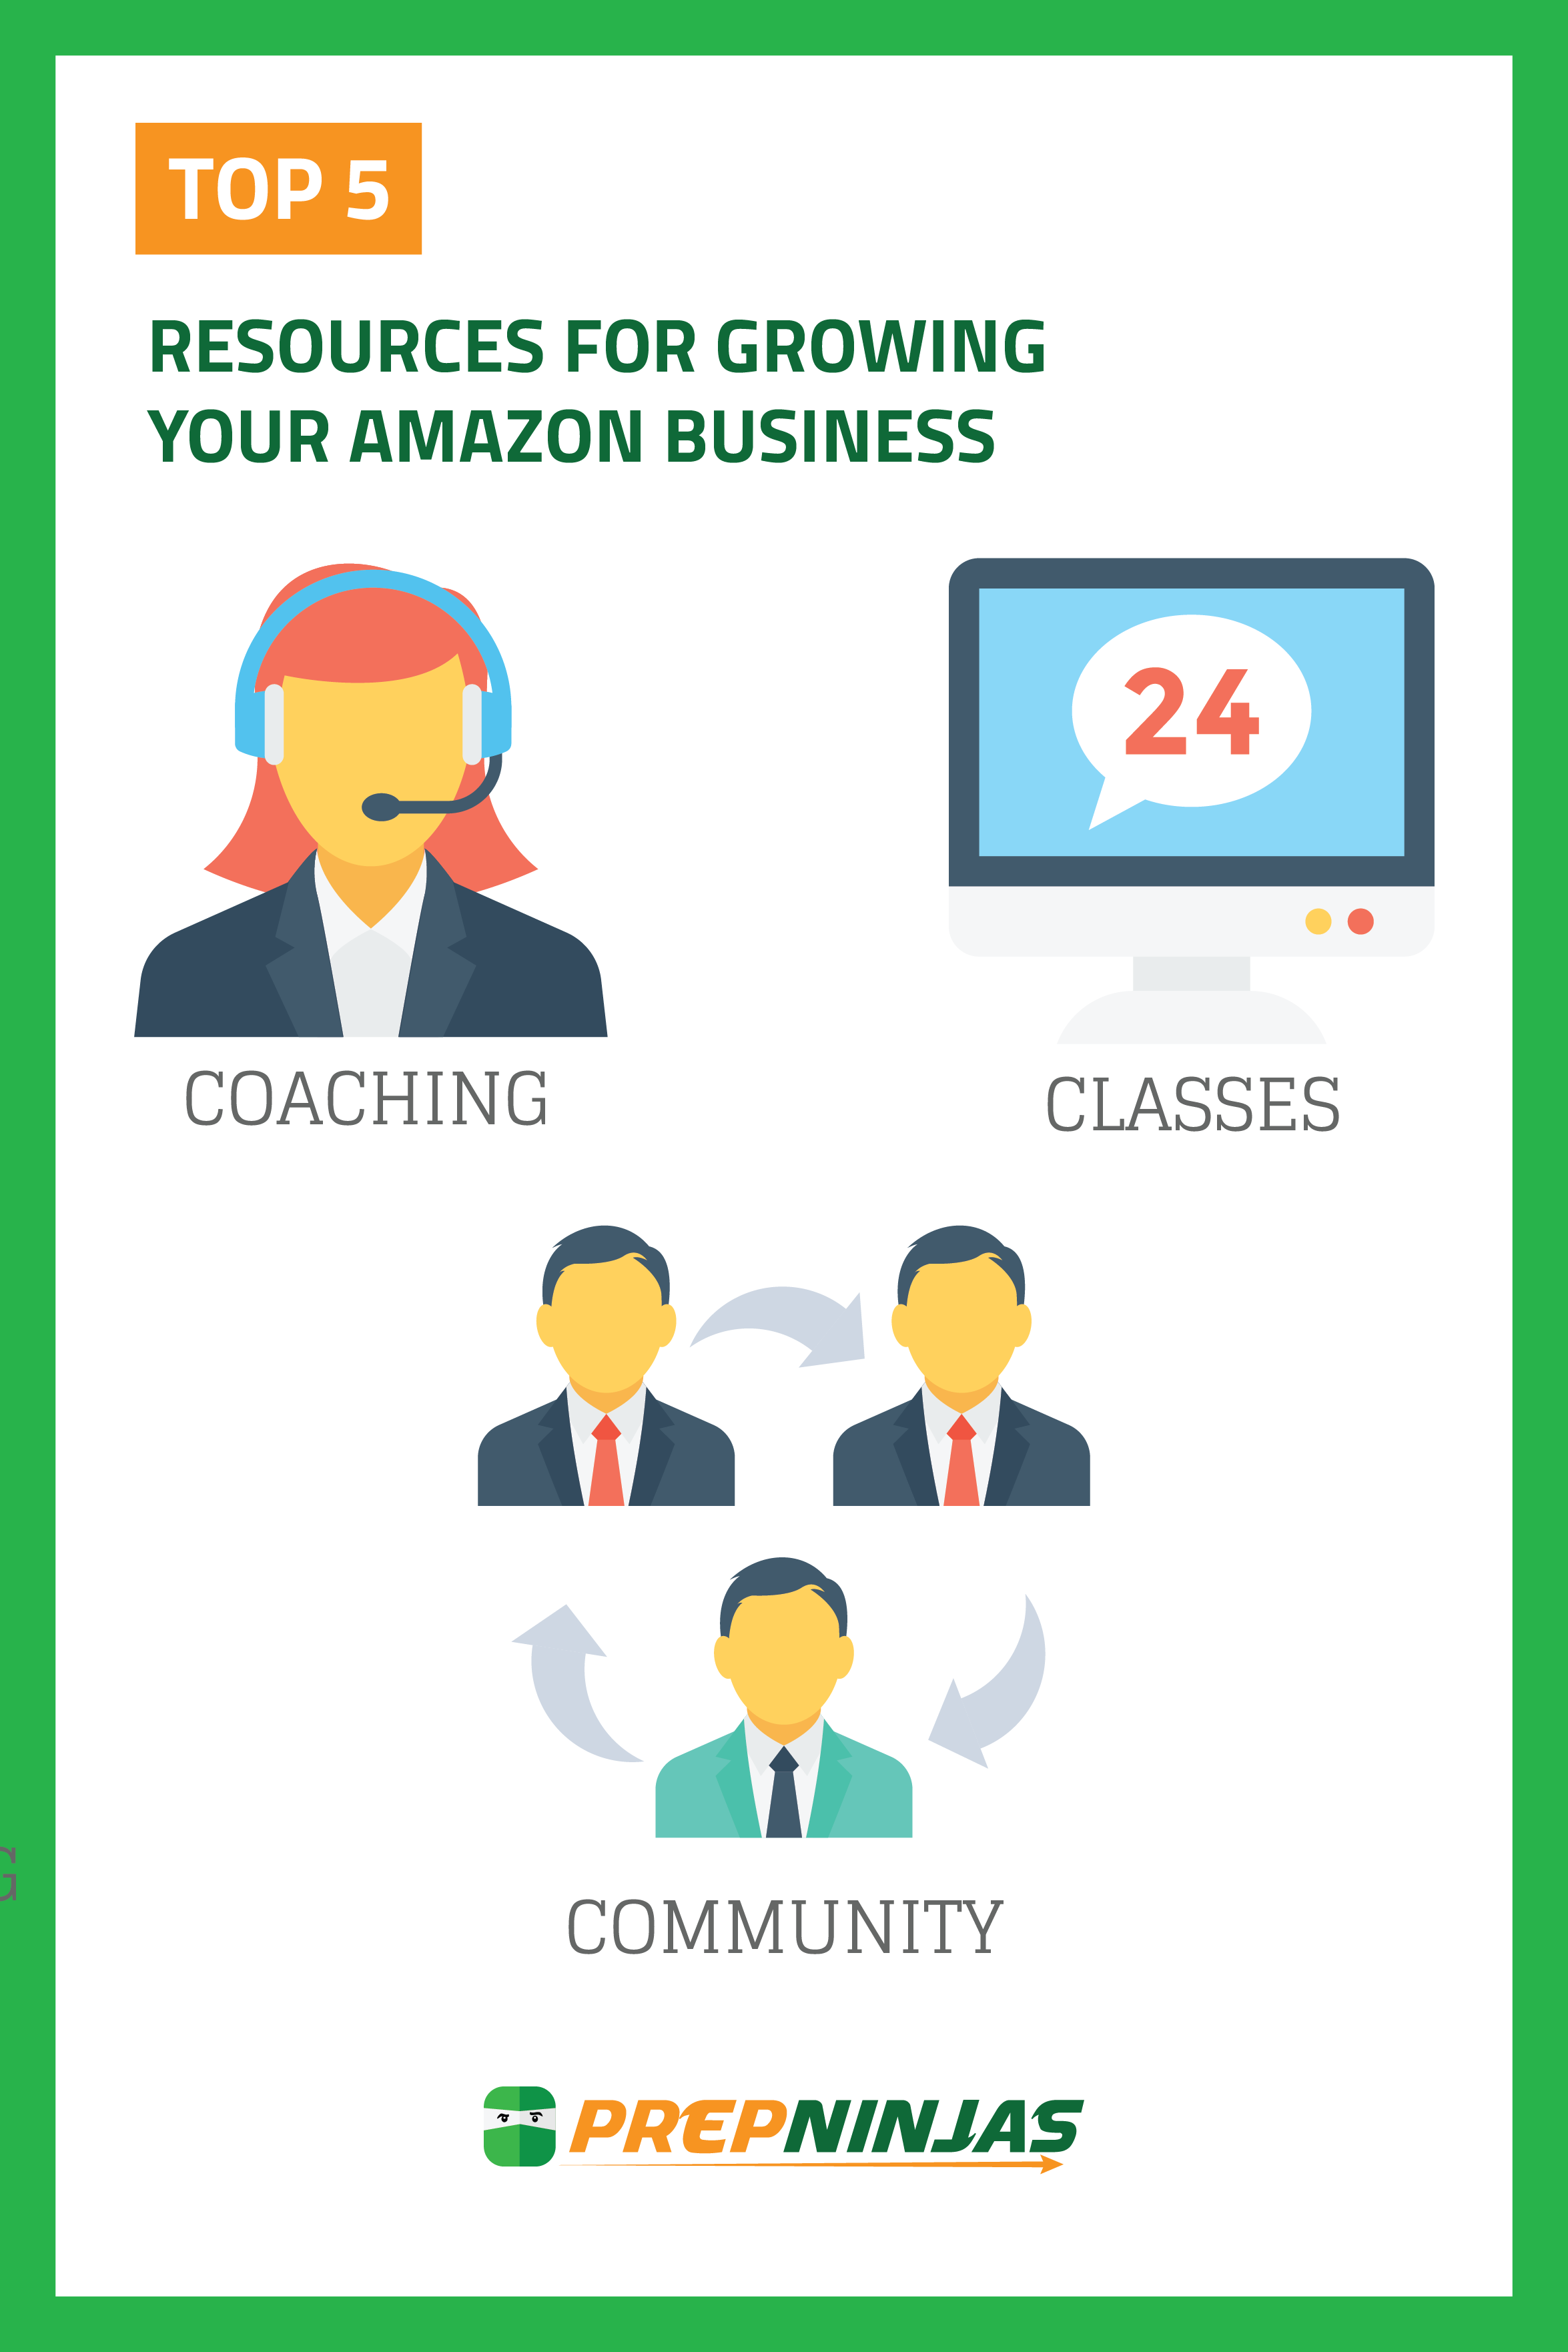 Top 5 Resources for Growing Your Amazon Business